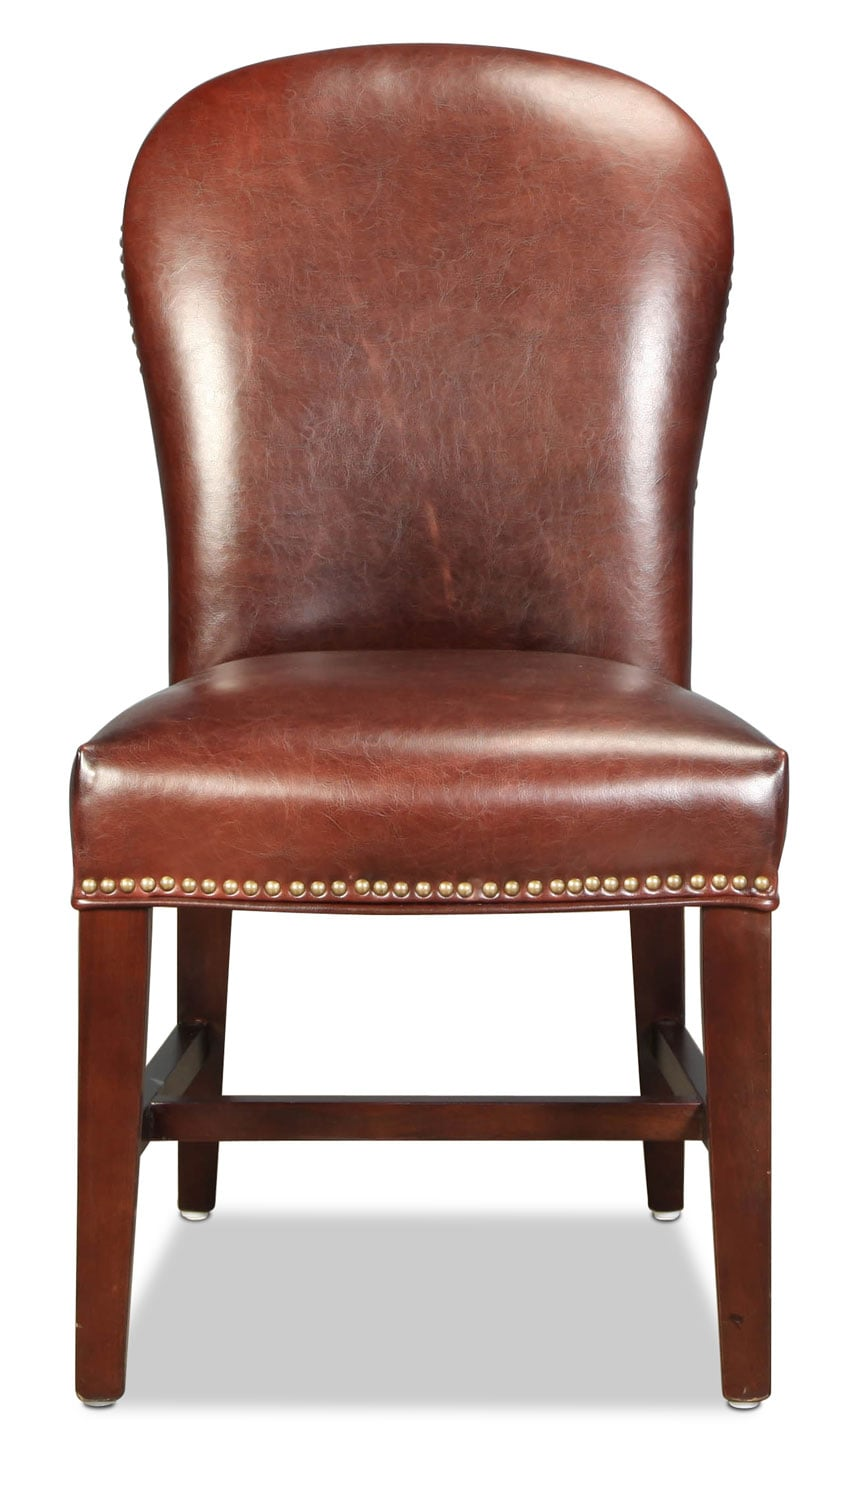 Grandview Rounded Side Chair -Brown